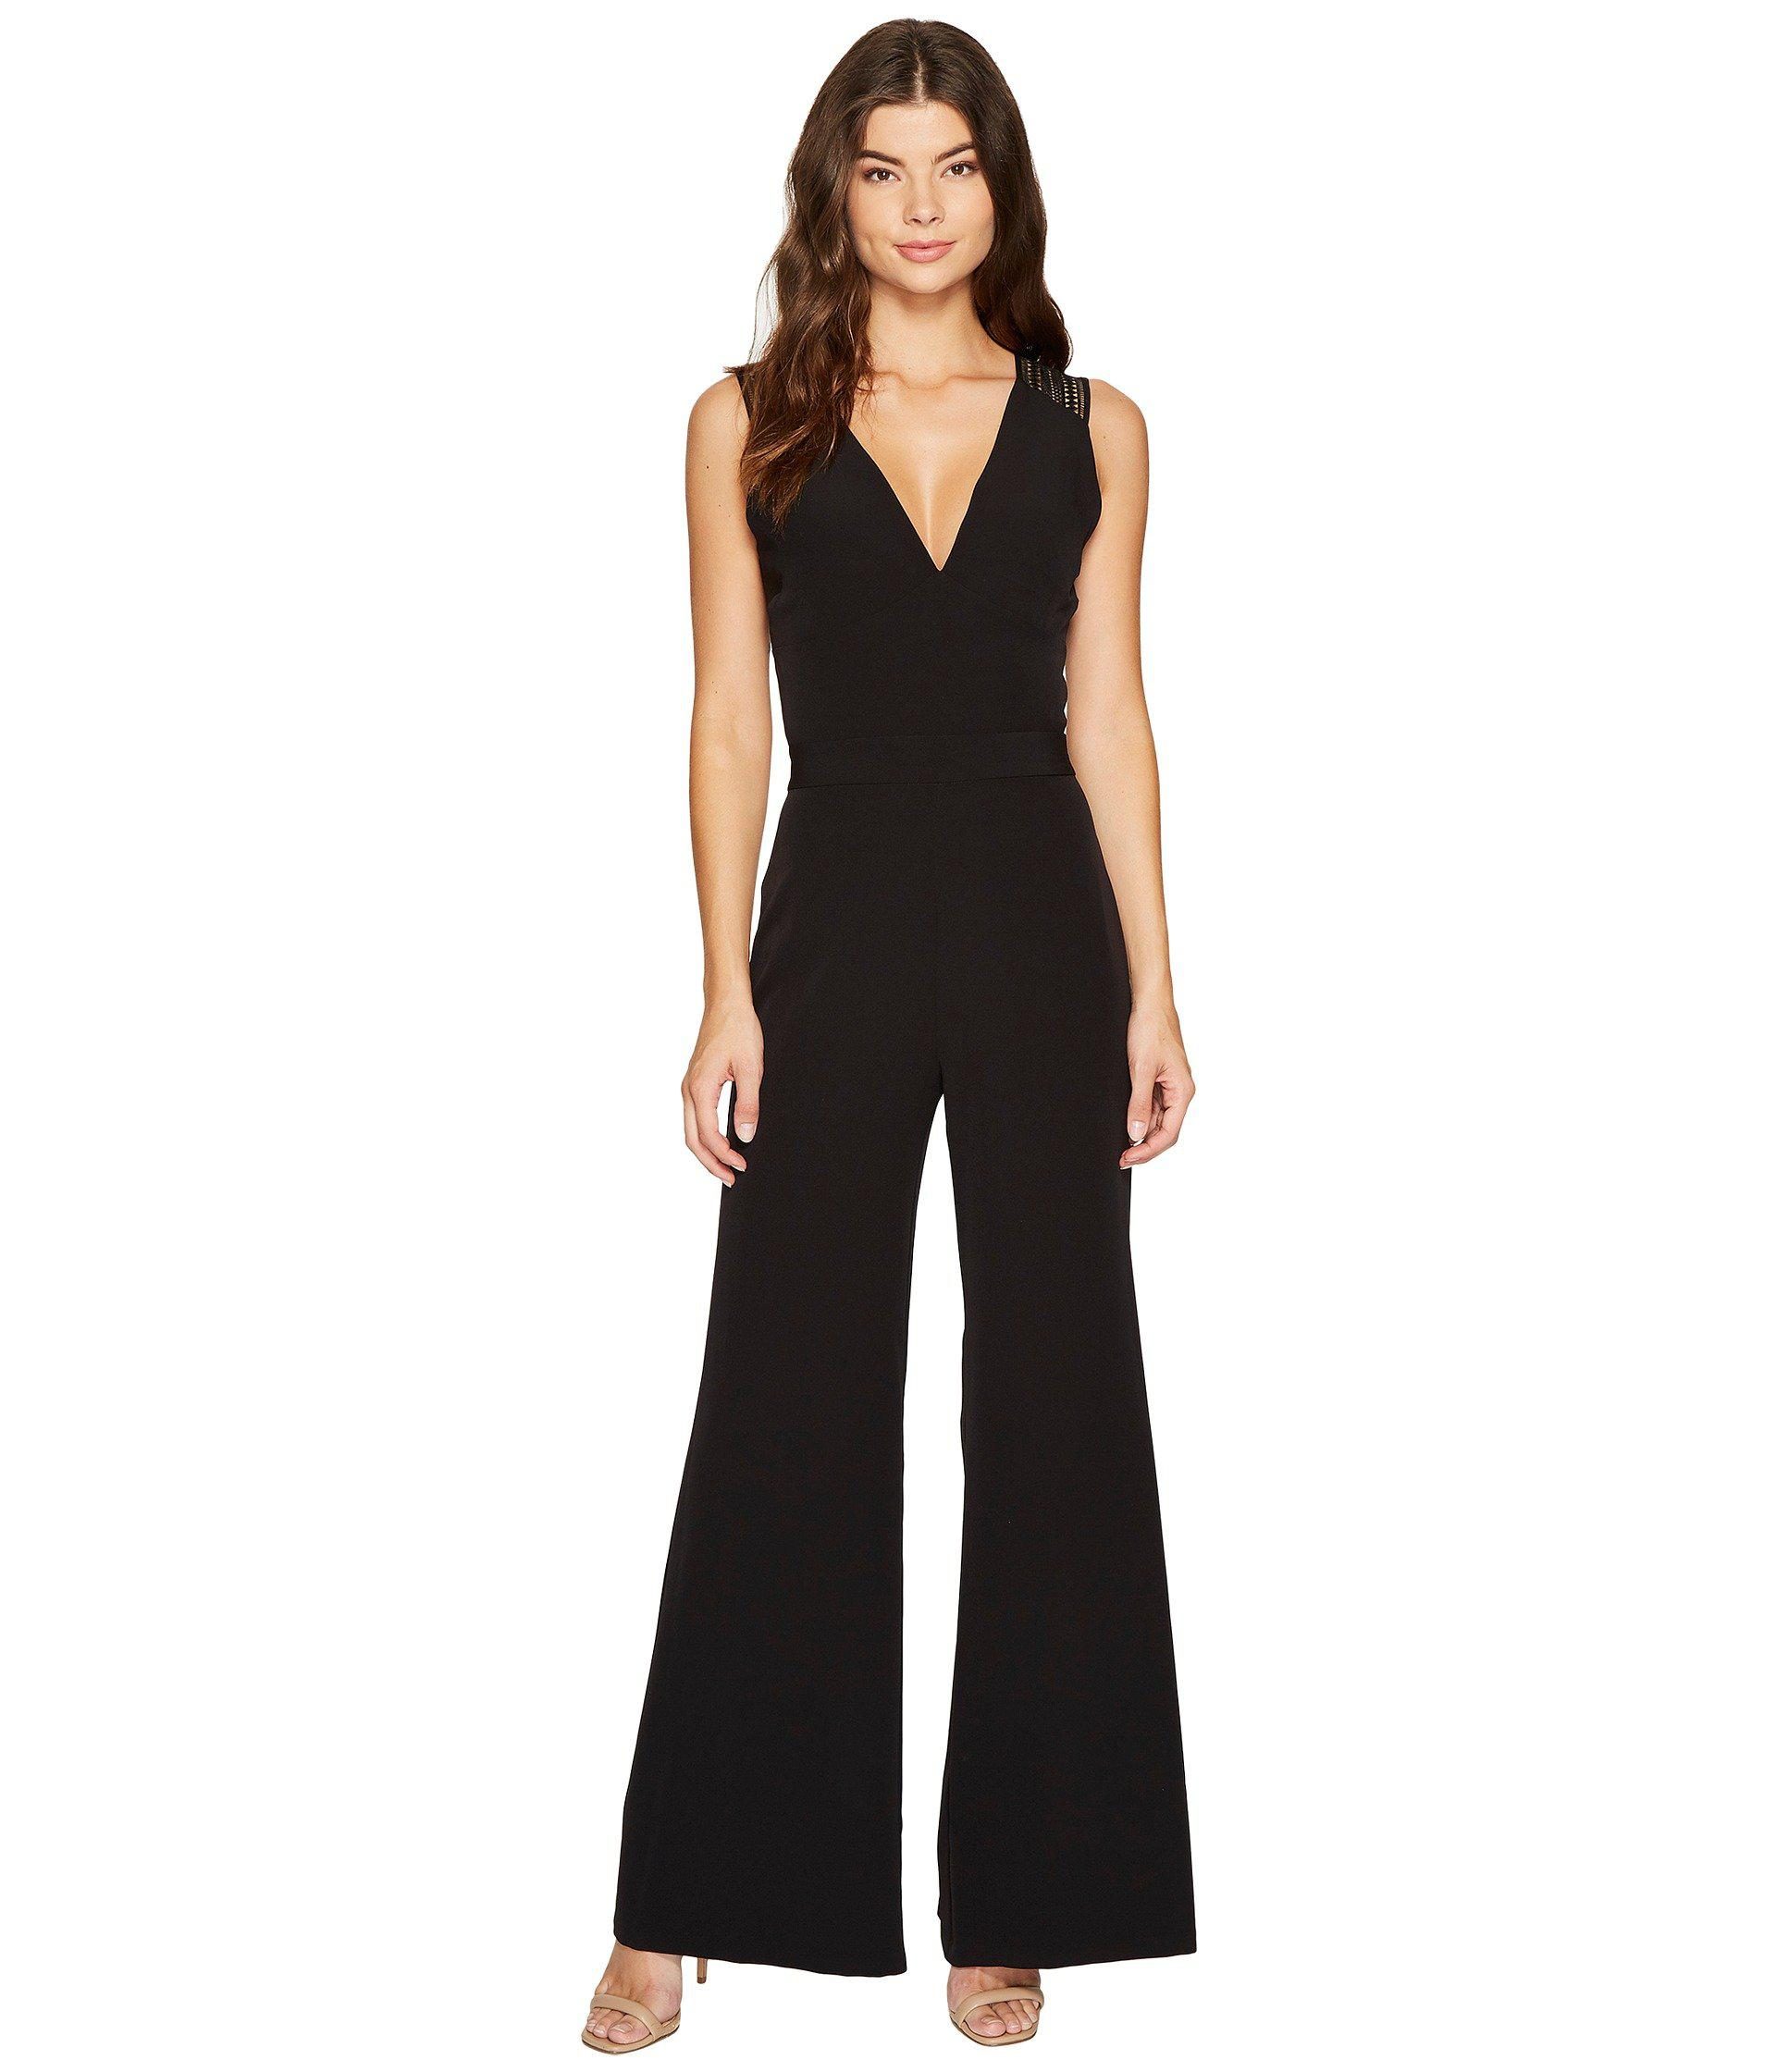 57e2909c7f7 Lyst - Laundry by Shelli Segal Lace Back Jumpsuit in Black - Save 33%